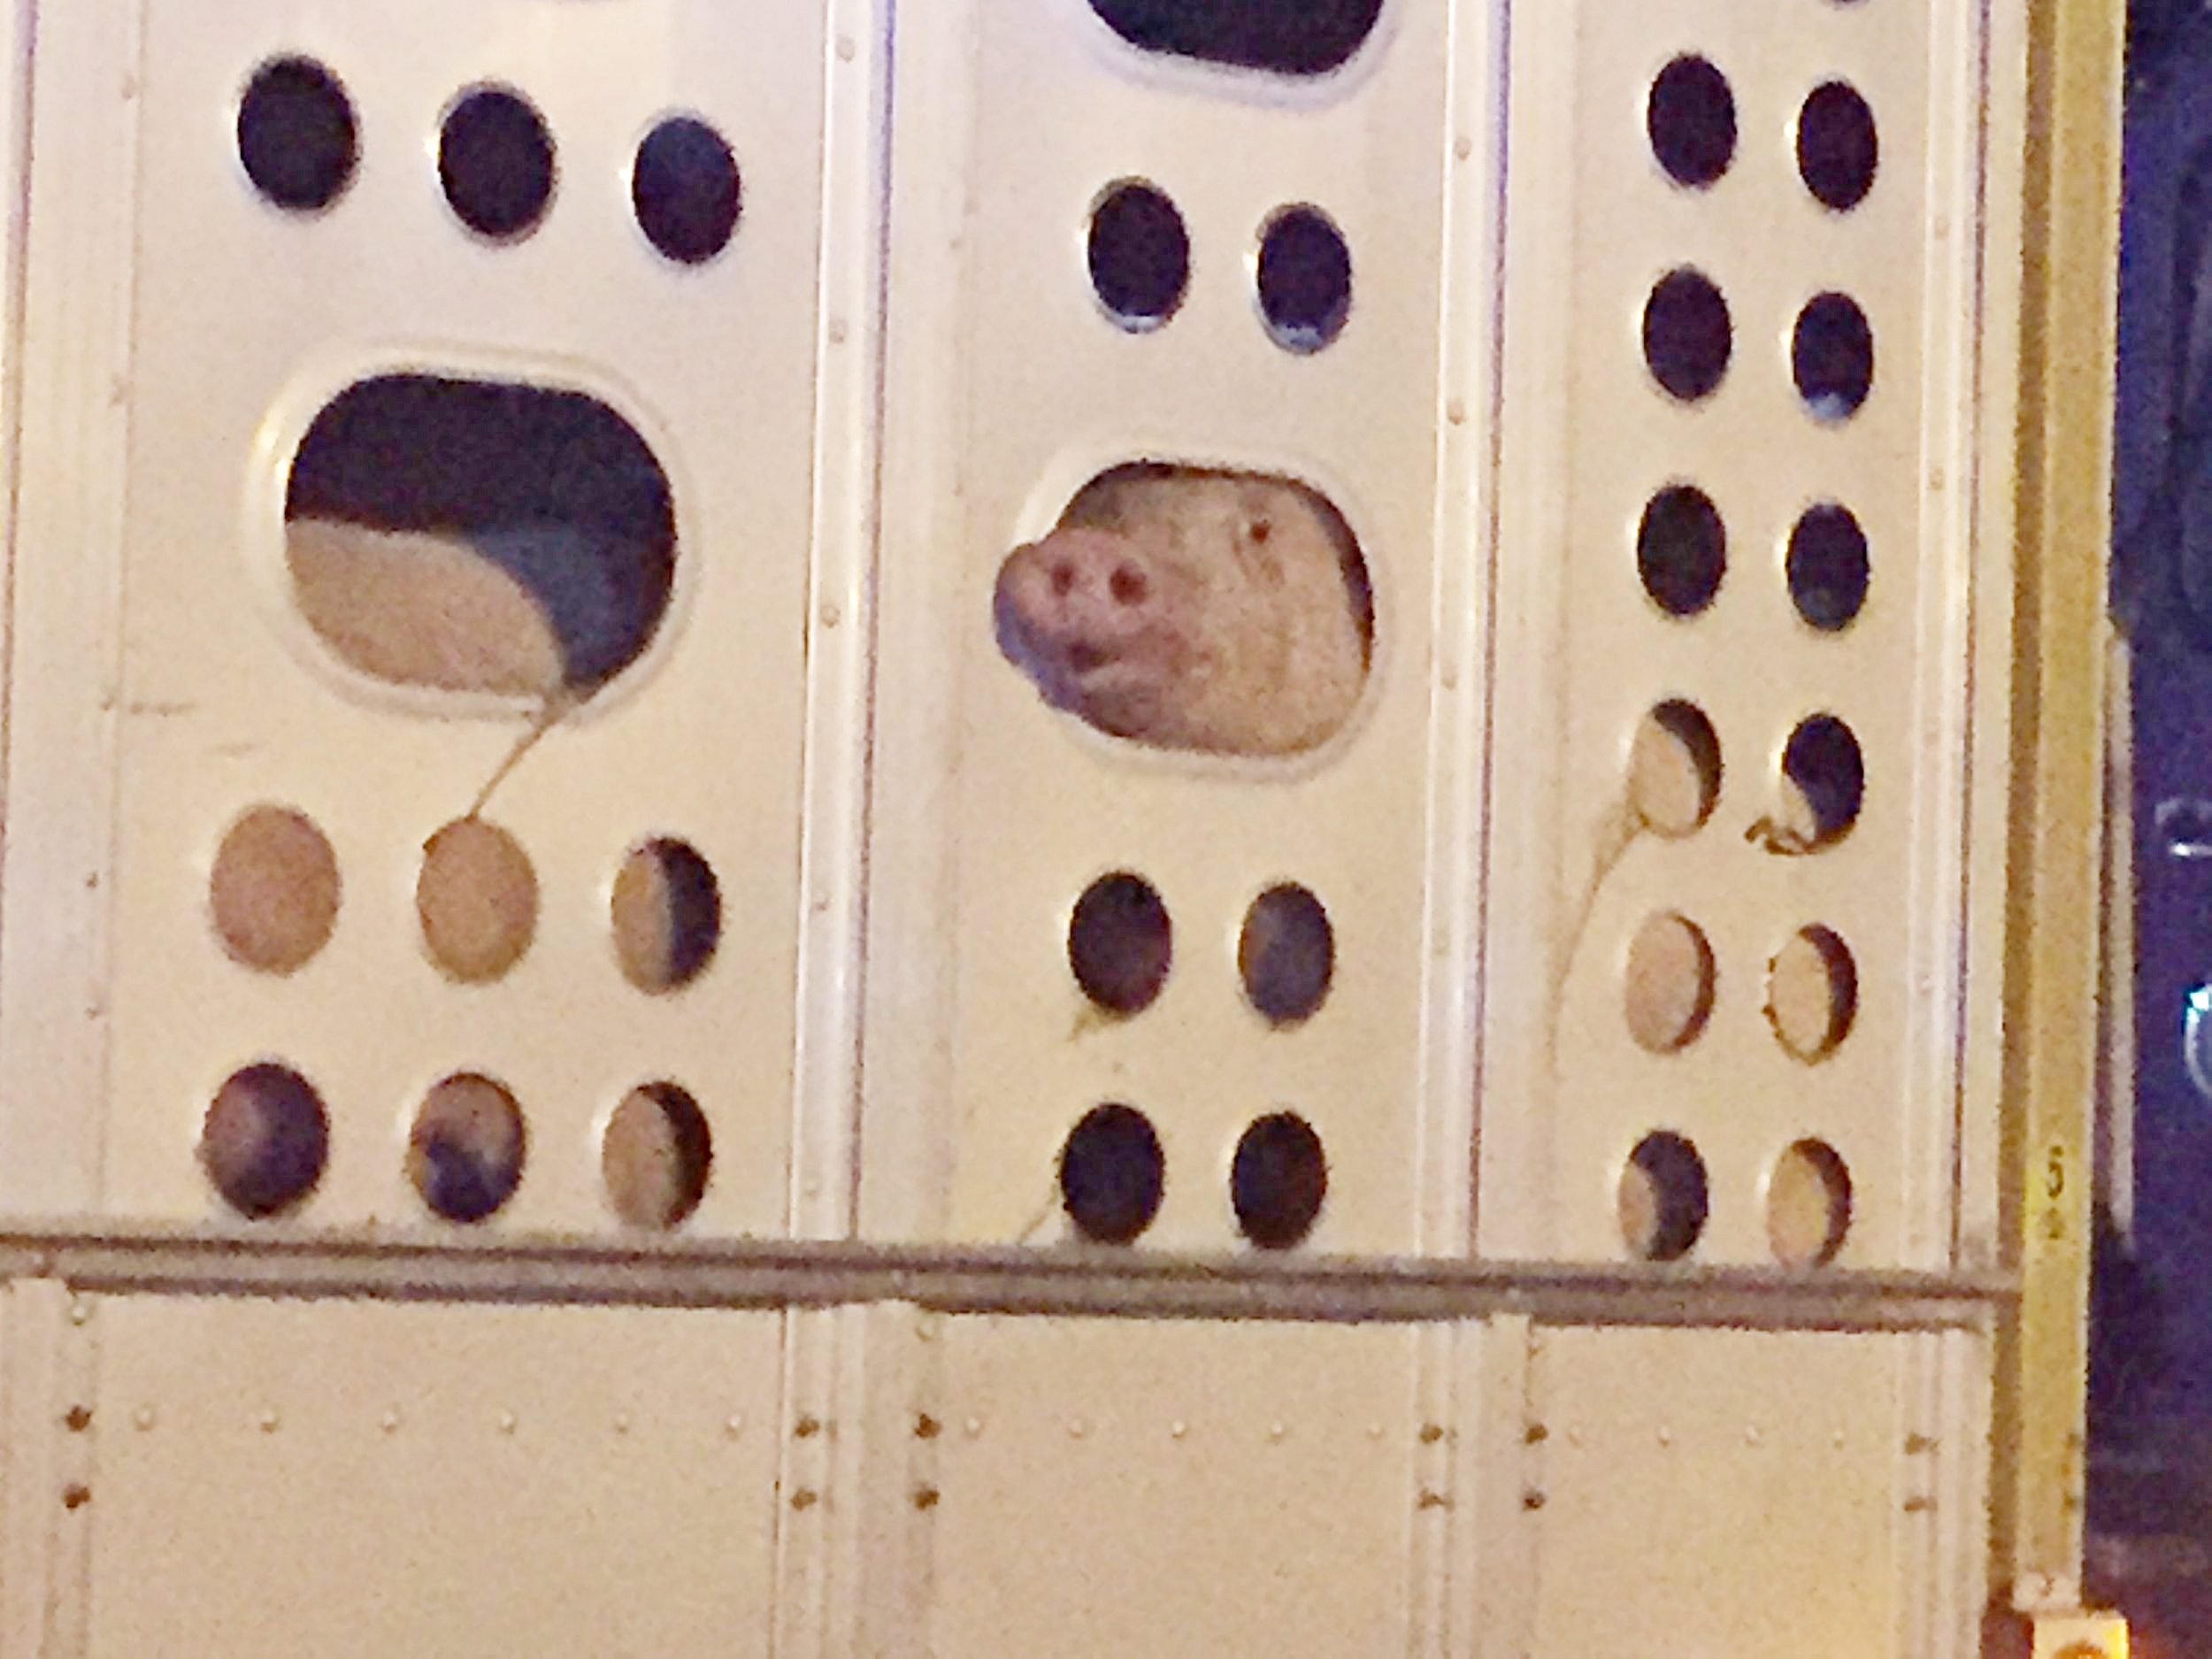 A terrified pig desperately peers out of a ventilation hole seeking help